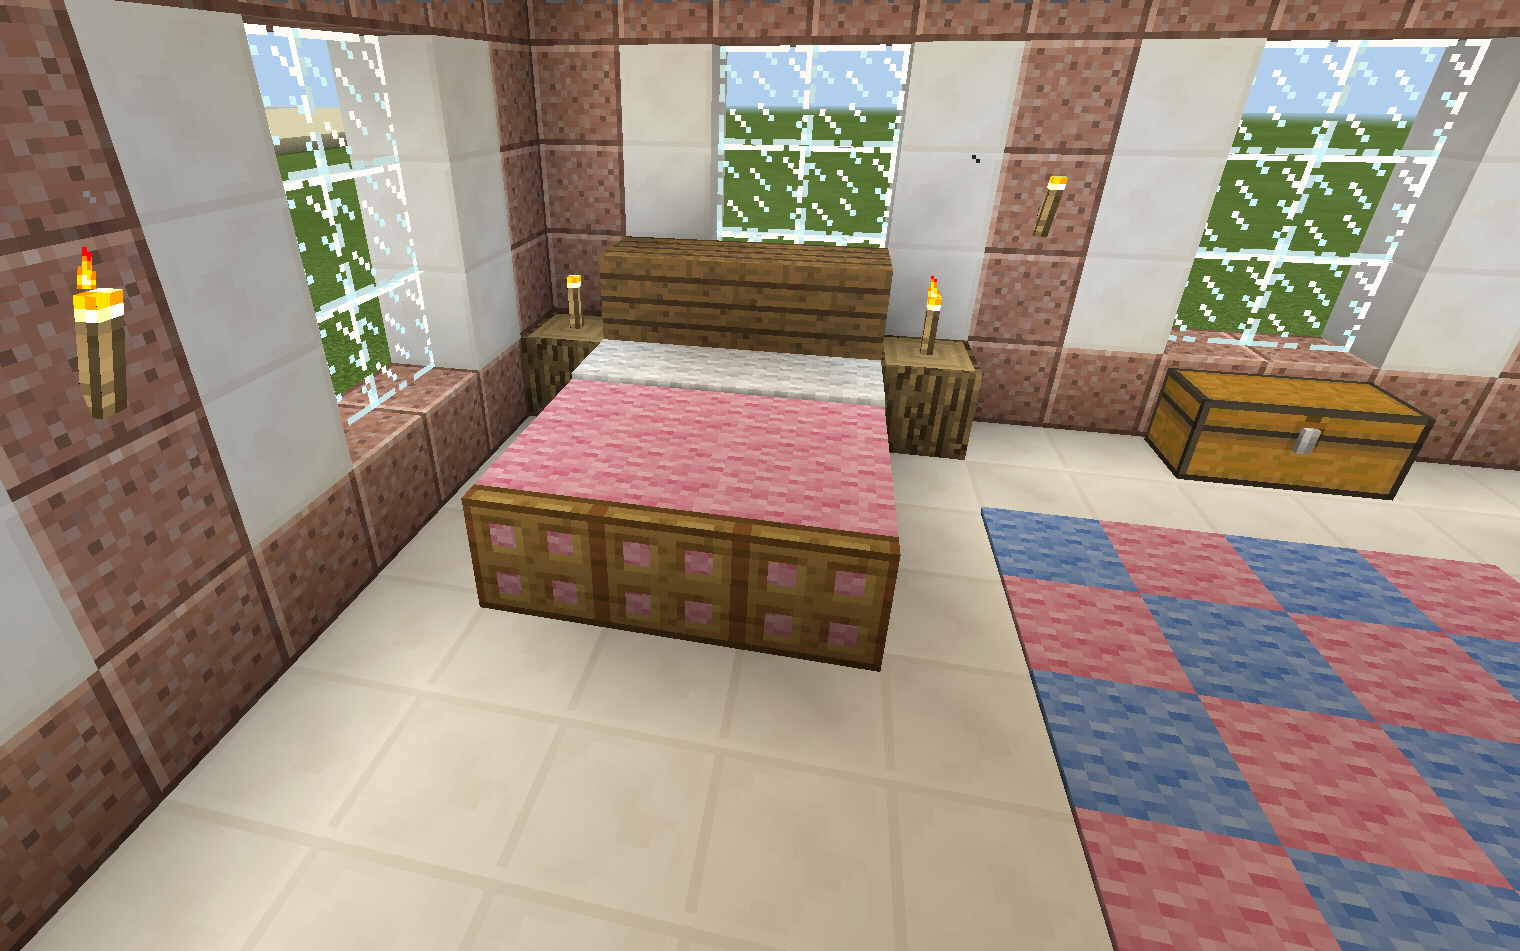 Minecraft Furniture Bedroom minecraft pink bed bedroom | minecraft | pinterest | pink bed